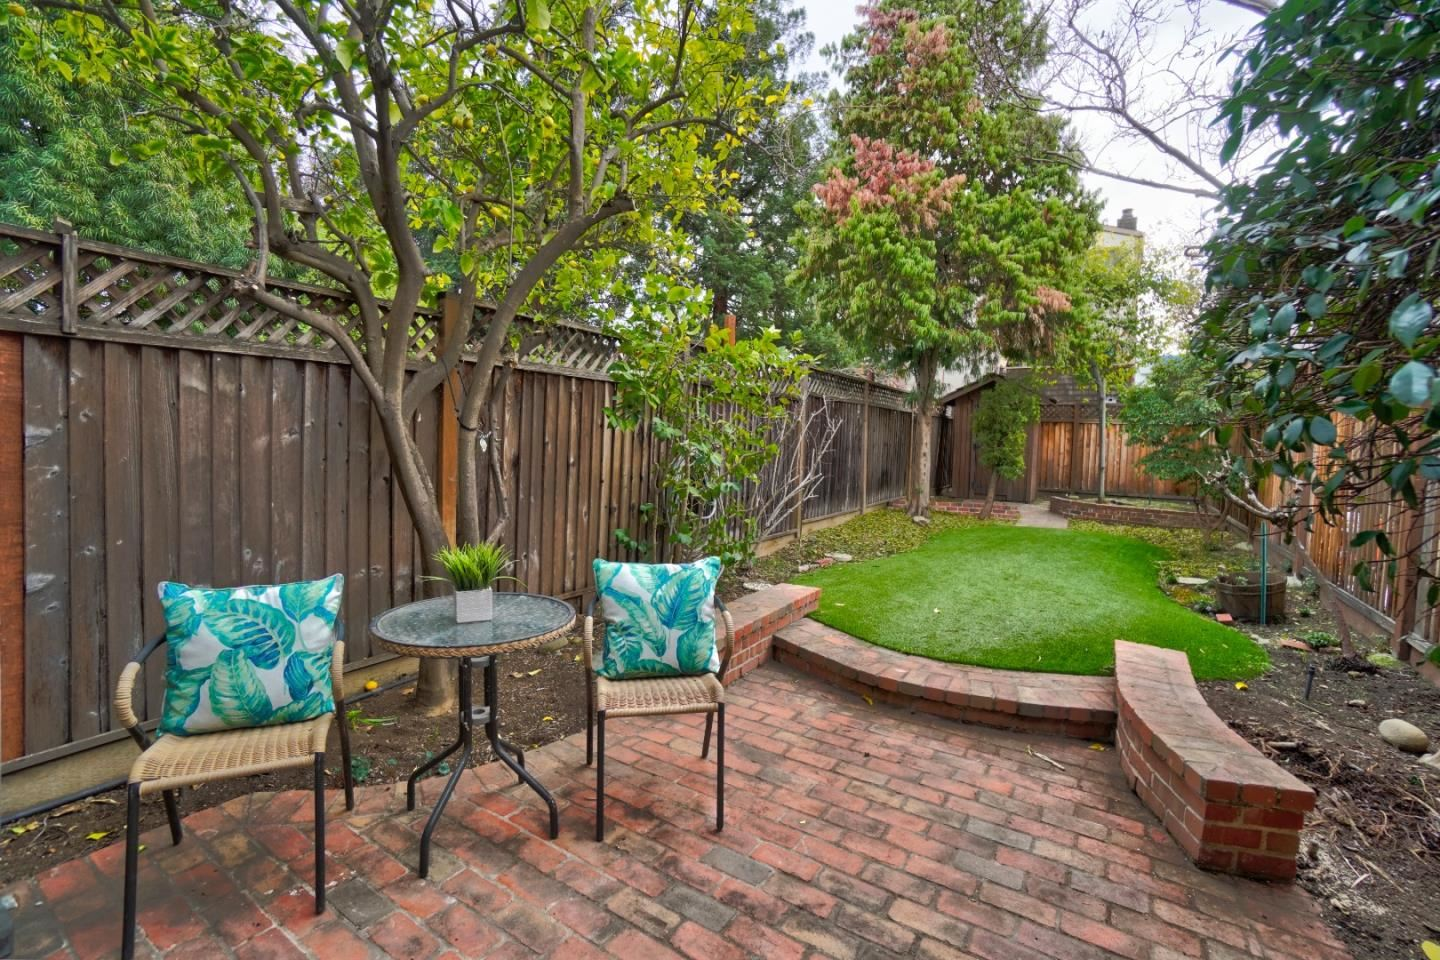 Photo for 666 W Sunnyoaks AVE, CAMPBELL, CA 95008 (MLS # ML81825017)